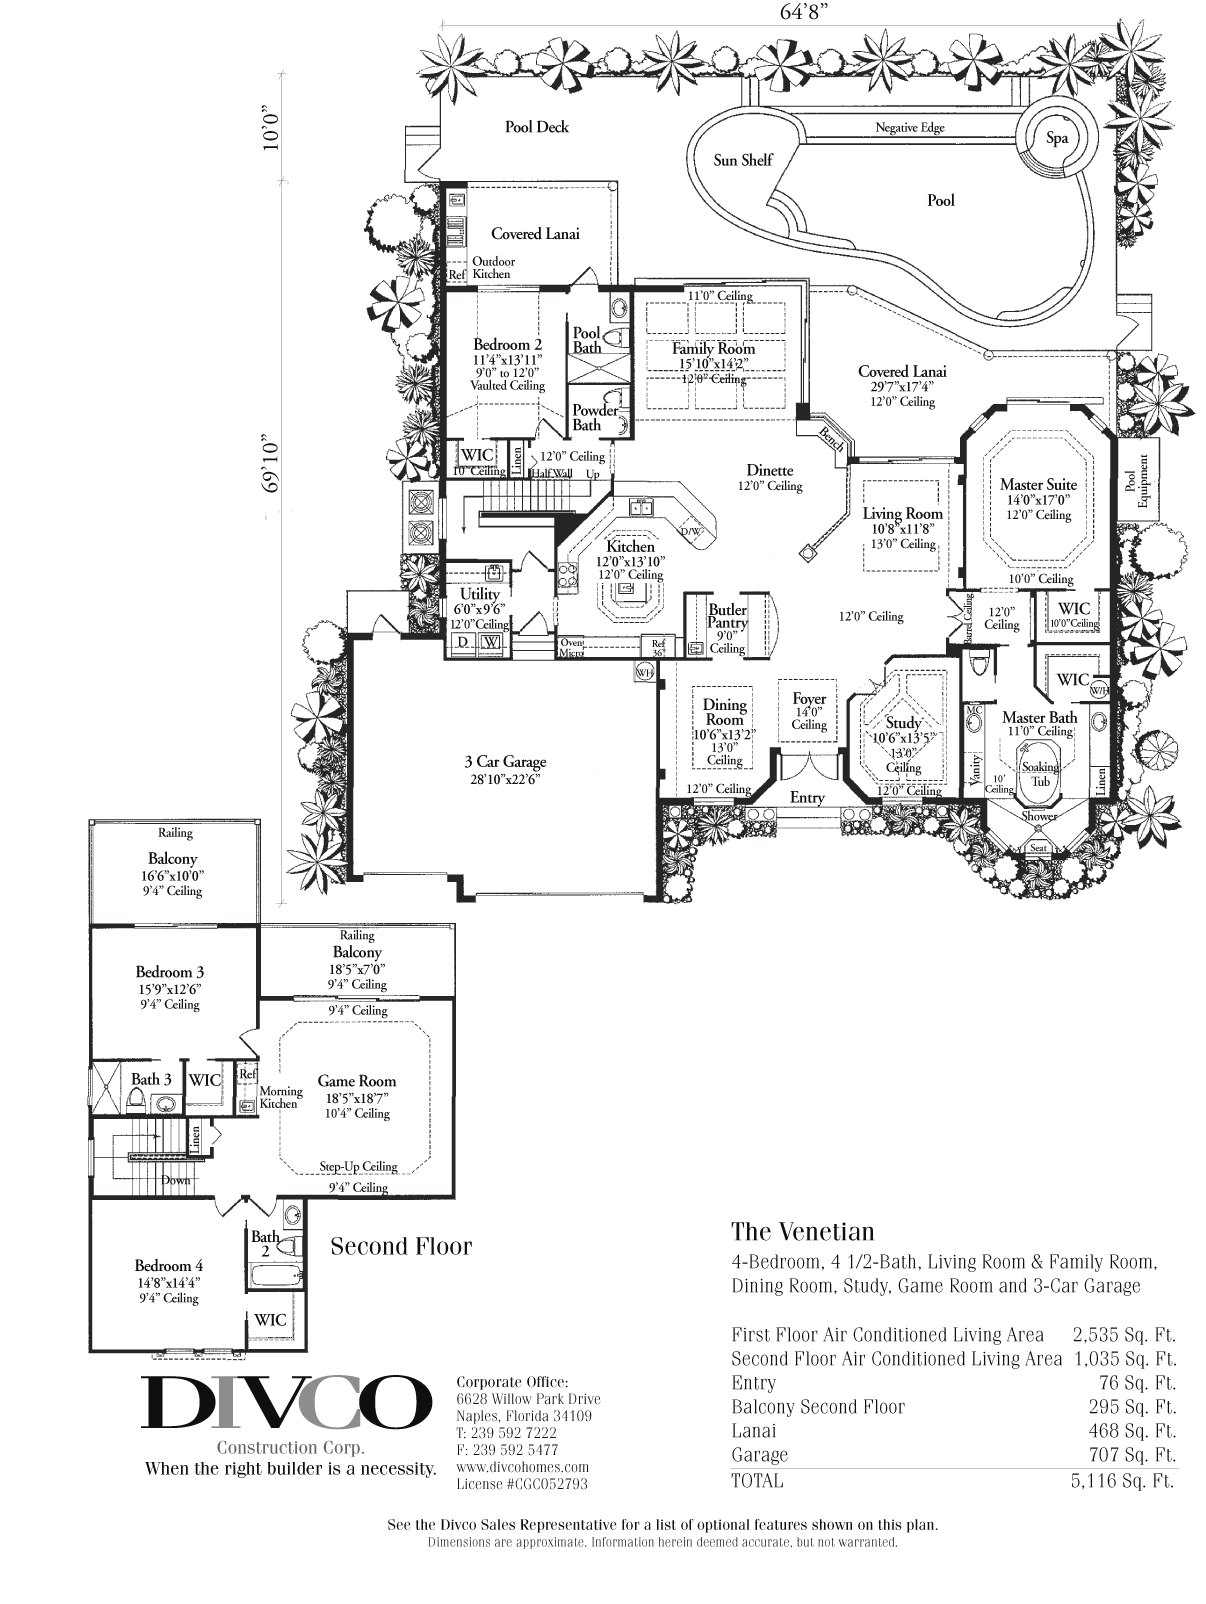 home floor plans with pictures luxury home floor plans marco island venetian floor - Luxury Floor Plans